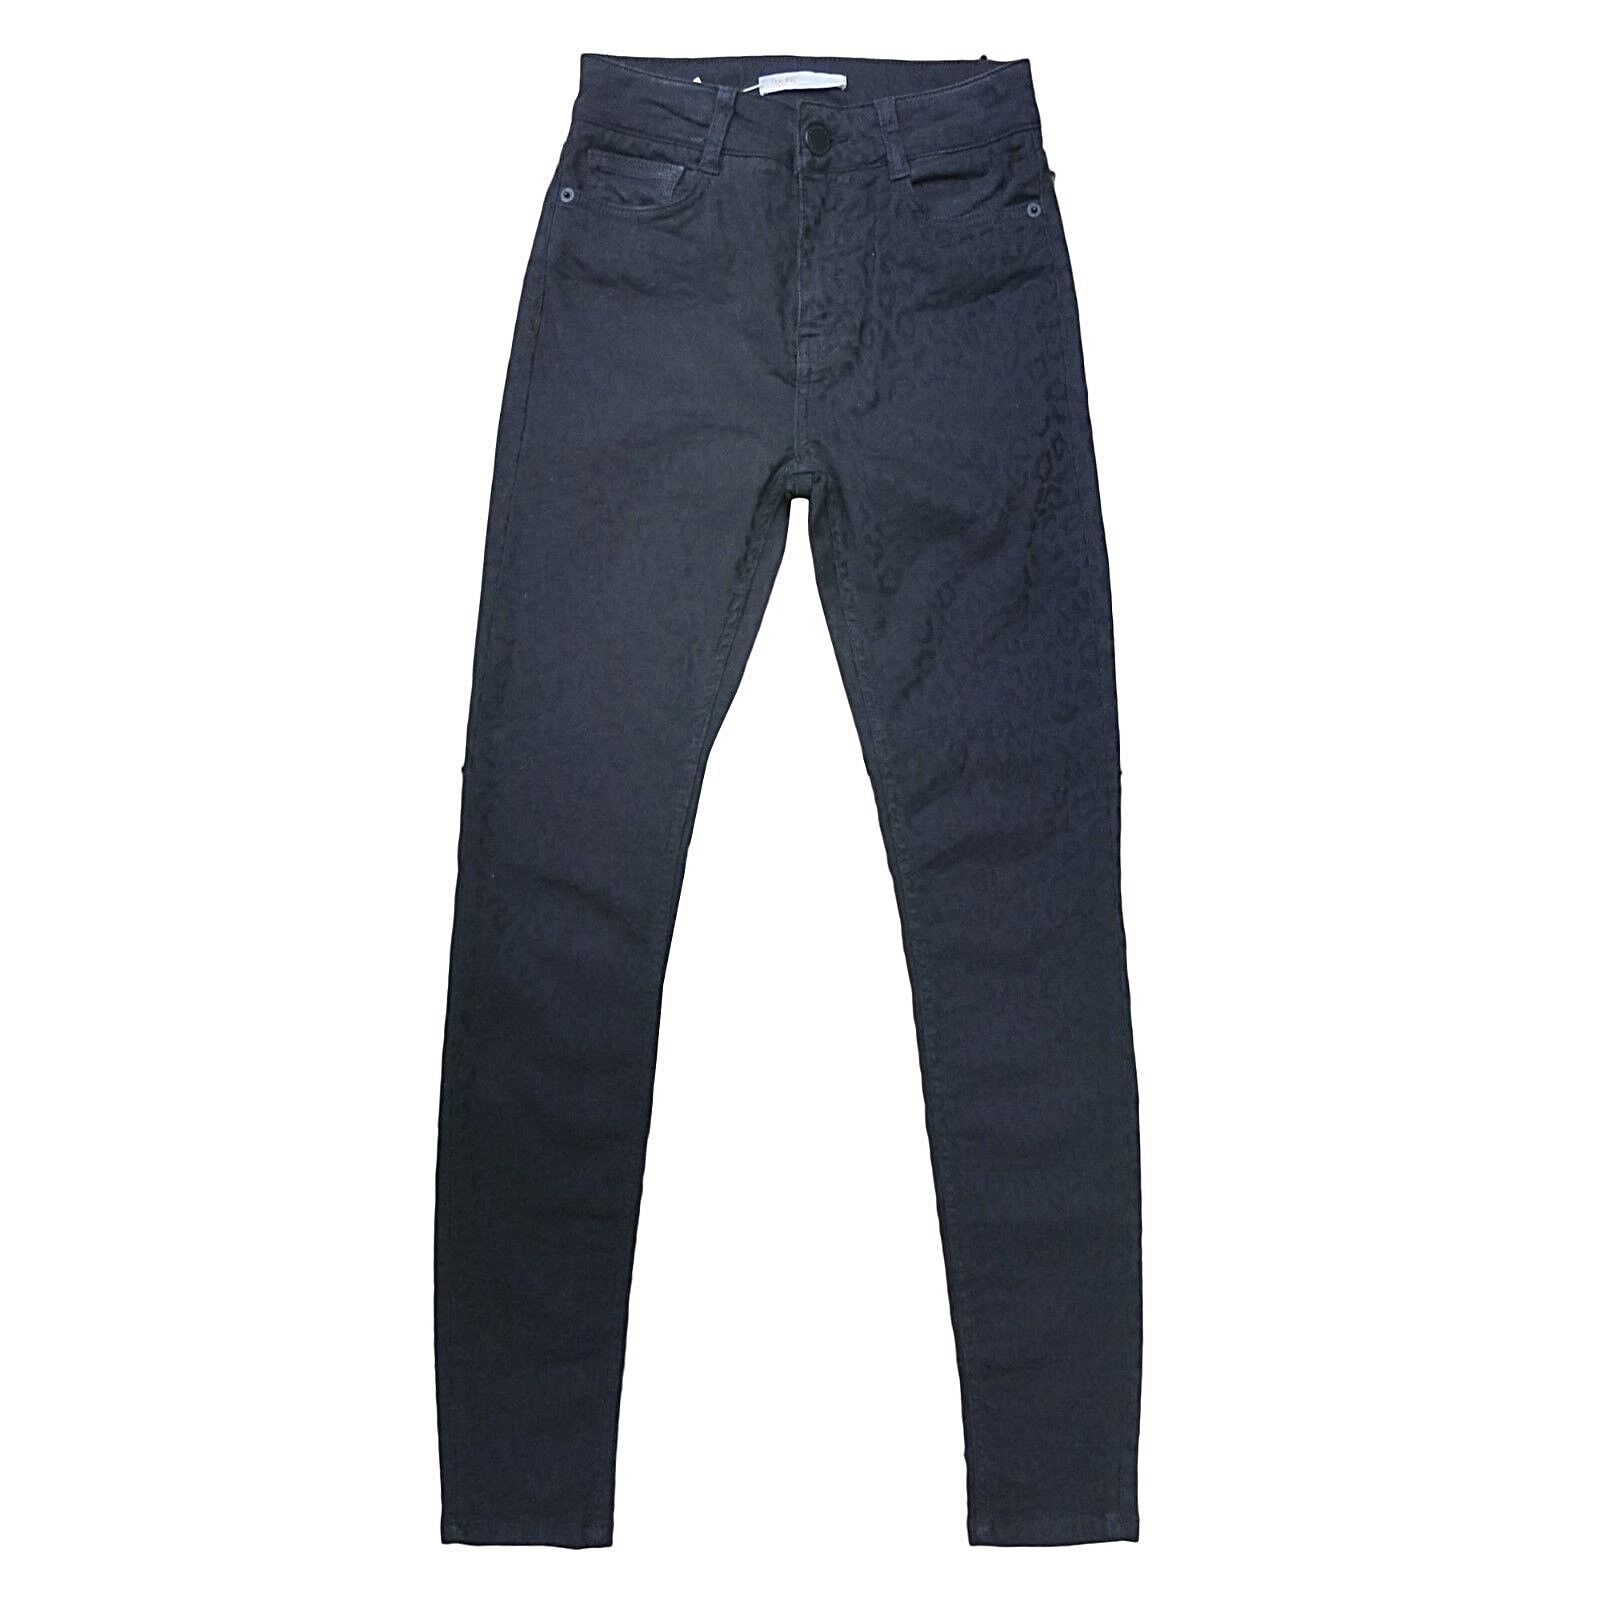 MAJE - JEANS - ENDLESS - SIZE 38 - AUTHENTIC